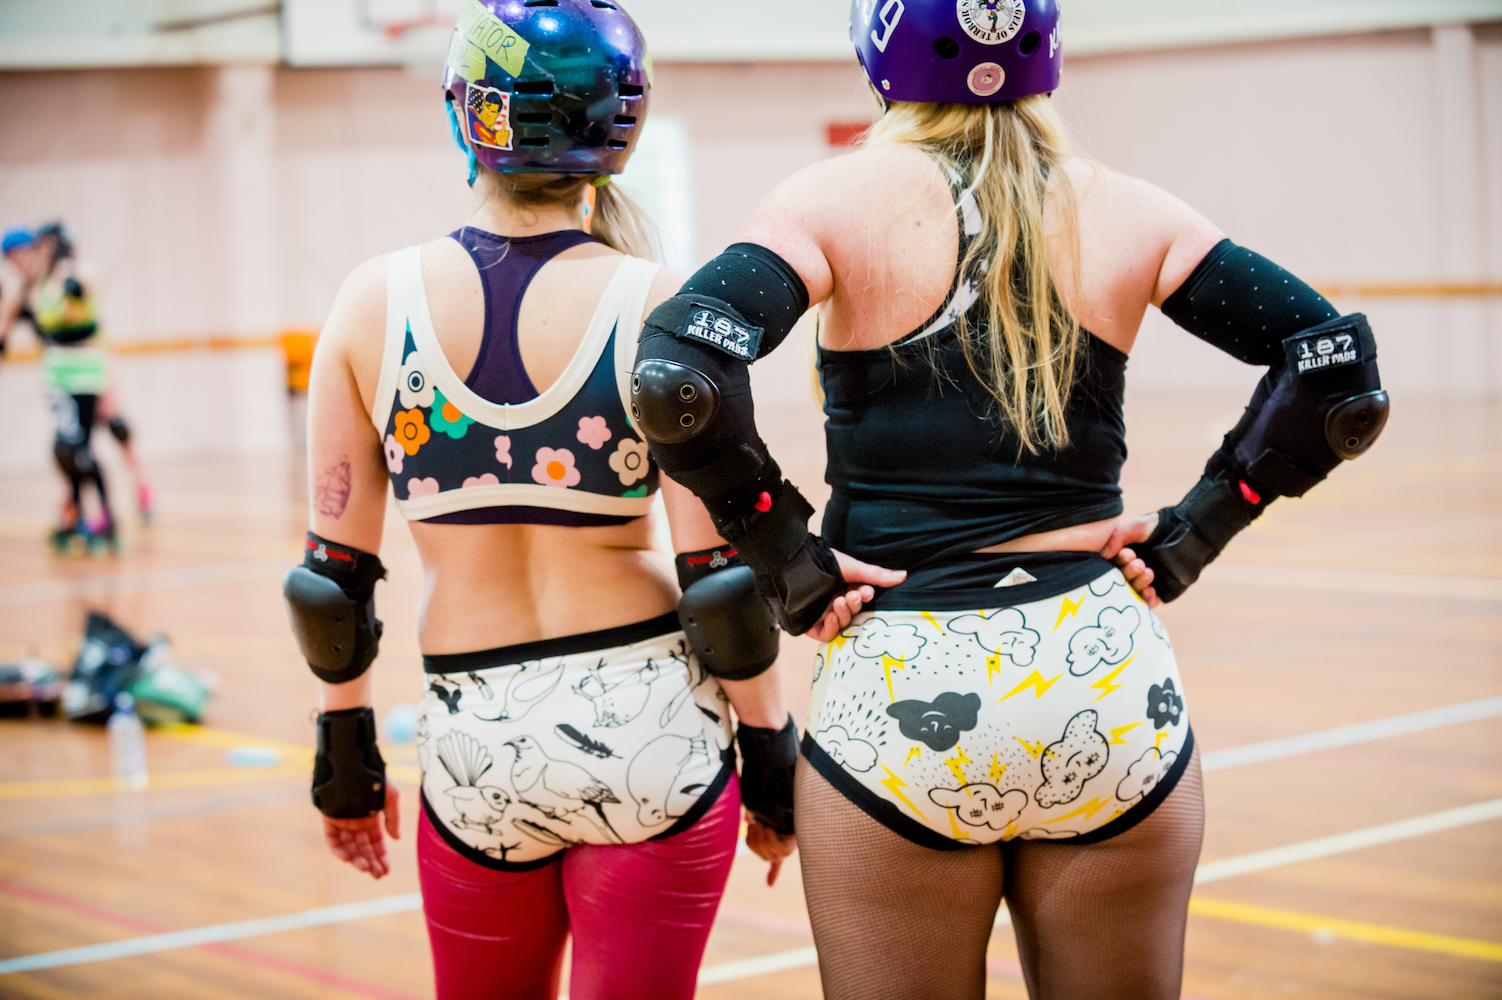 Wellington, NZ, 26 August 2017. Roller Derby players photographed for the Thunderpants company, Wairarapa, NZ. Photo credit: Stephen AíCourt. COPYRIGHT ©Stephen AíCourt